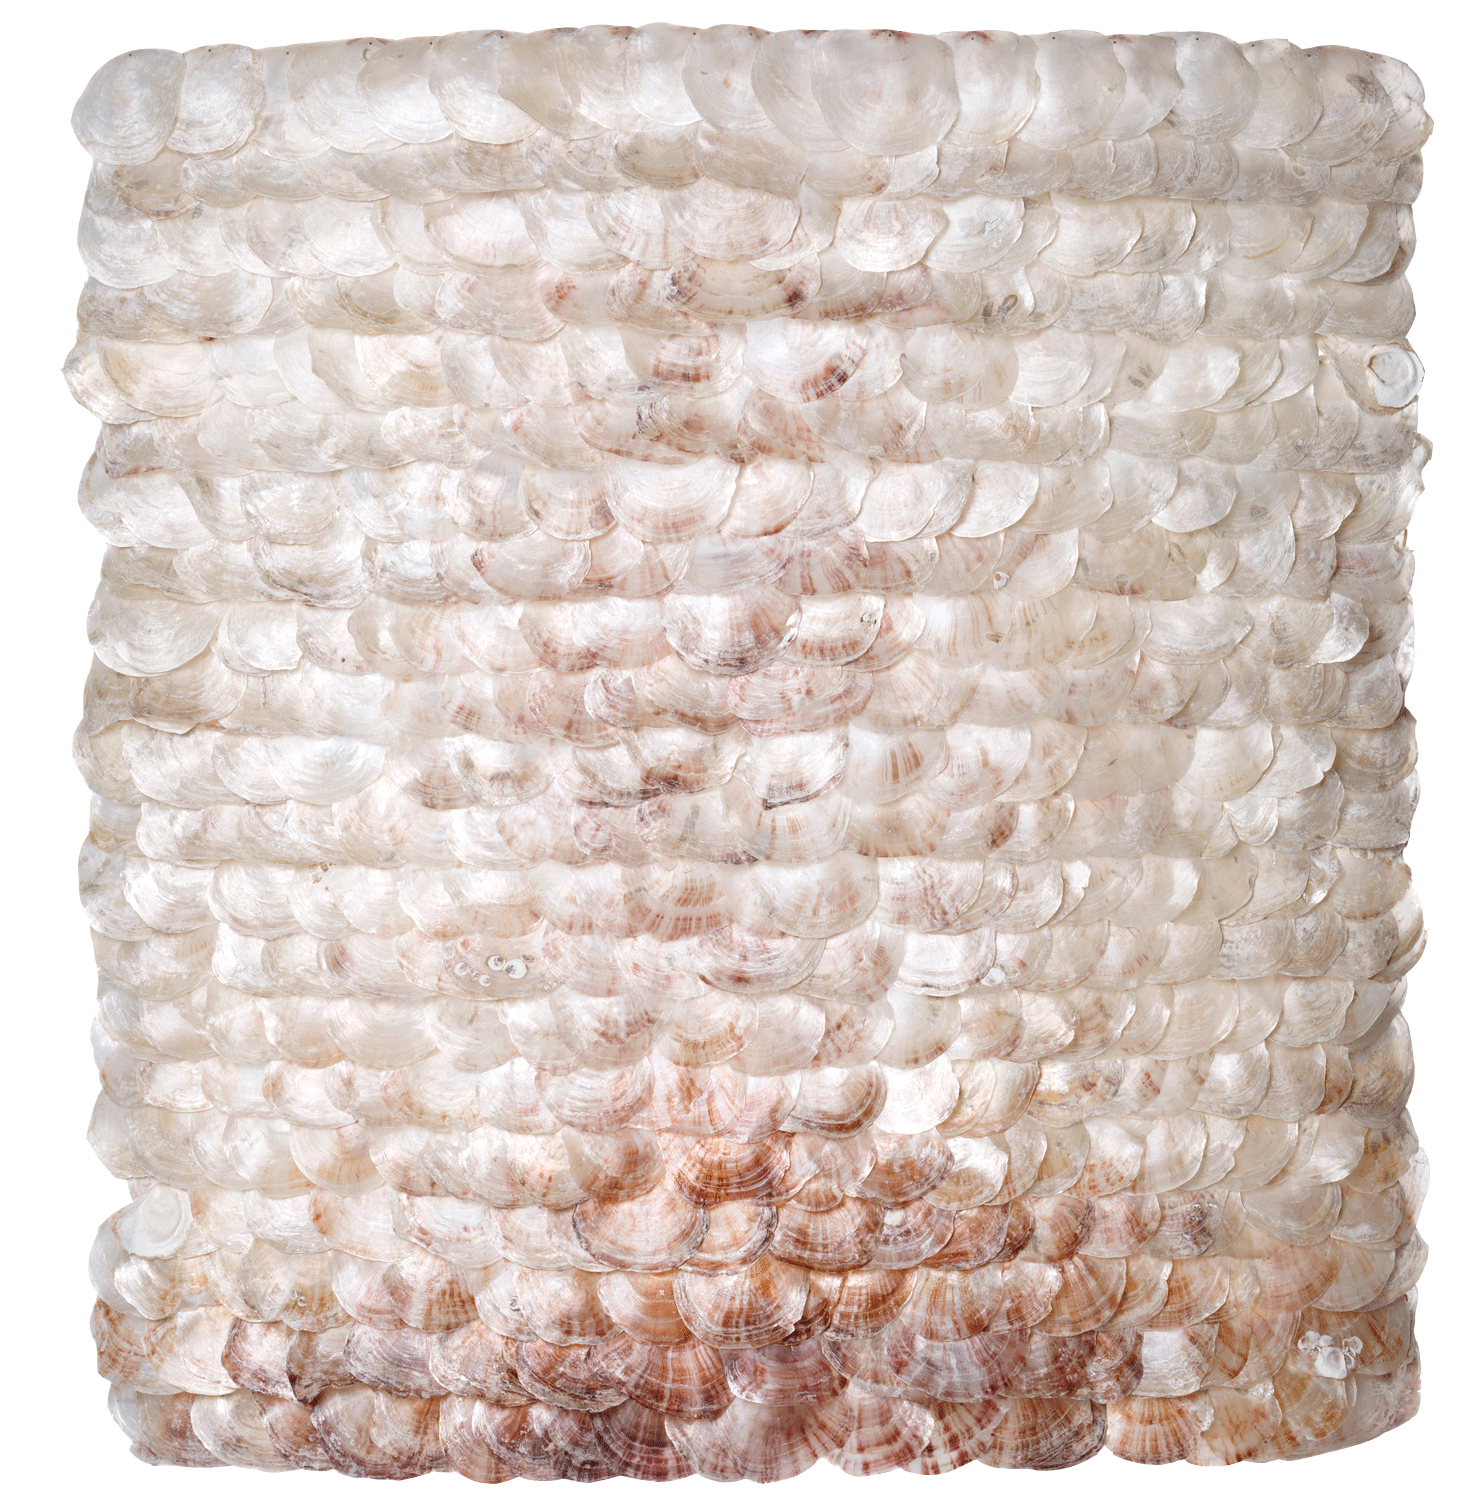 Mural object with Placuna shells, some of which pink-red (rare). 105x105 cm. The mother-of-pearl in the shells reflects the incoming light. Contemplation